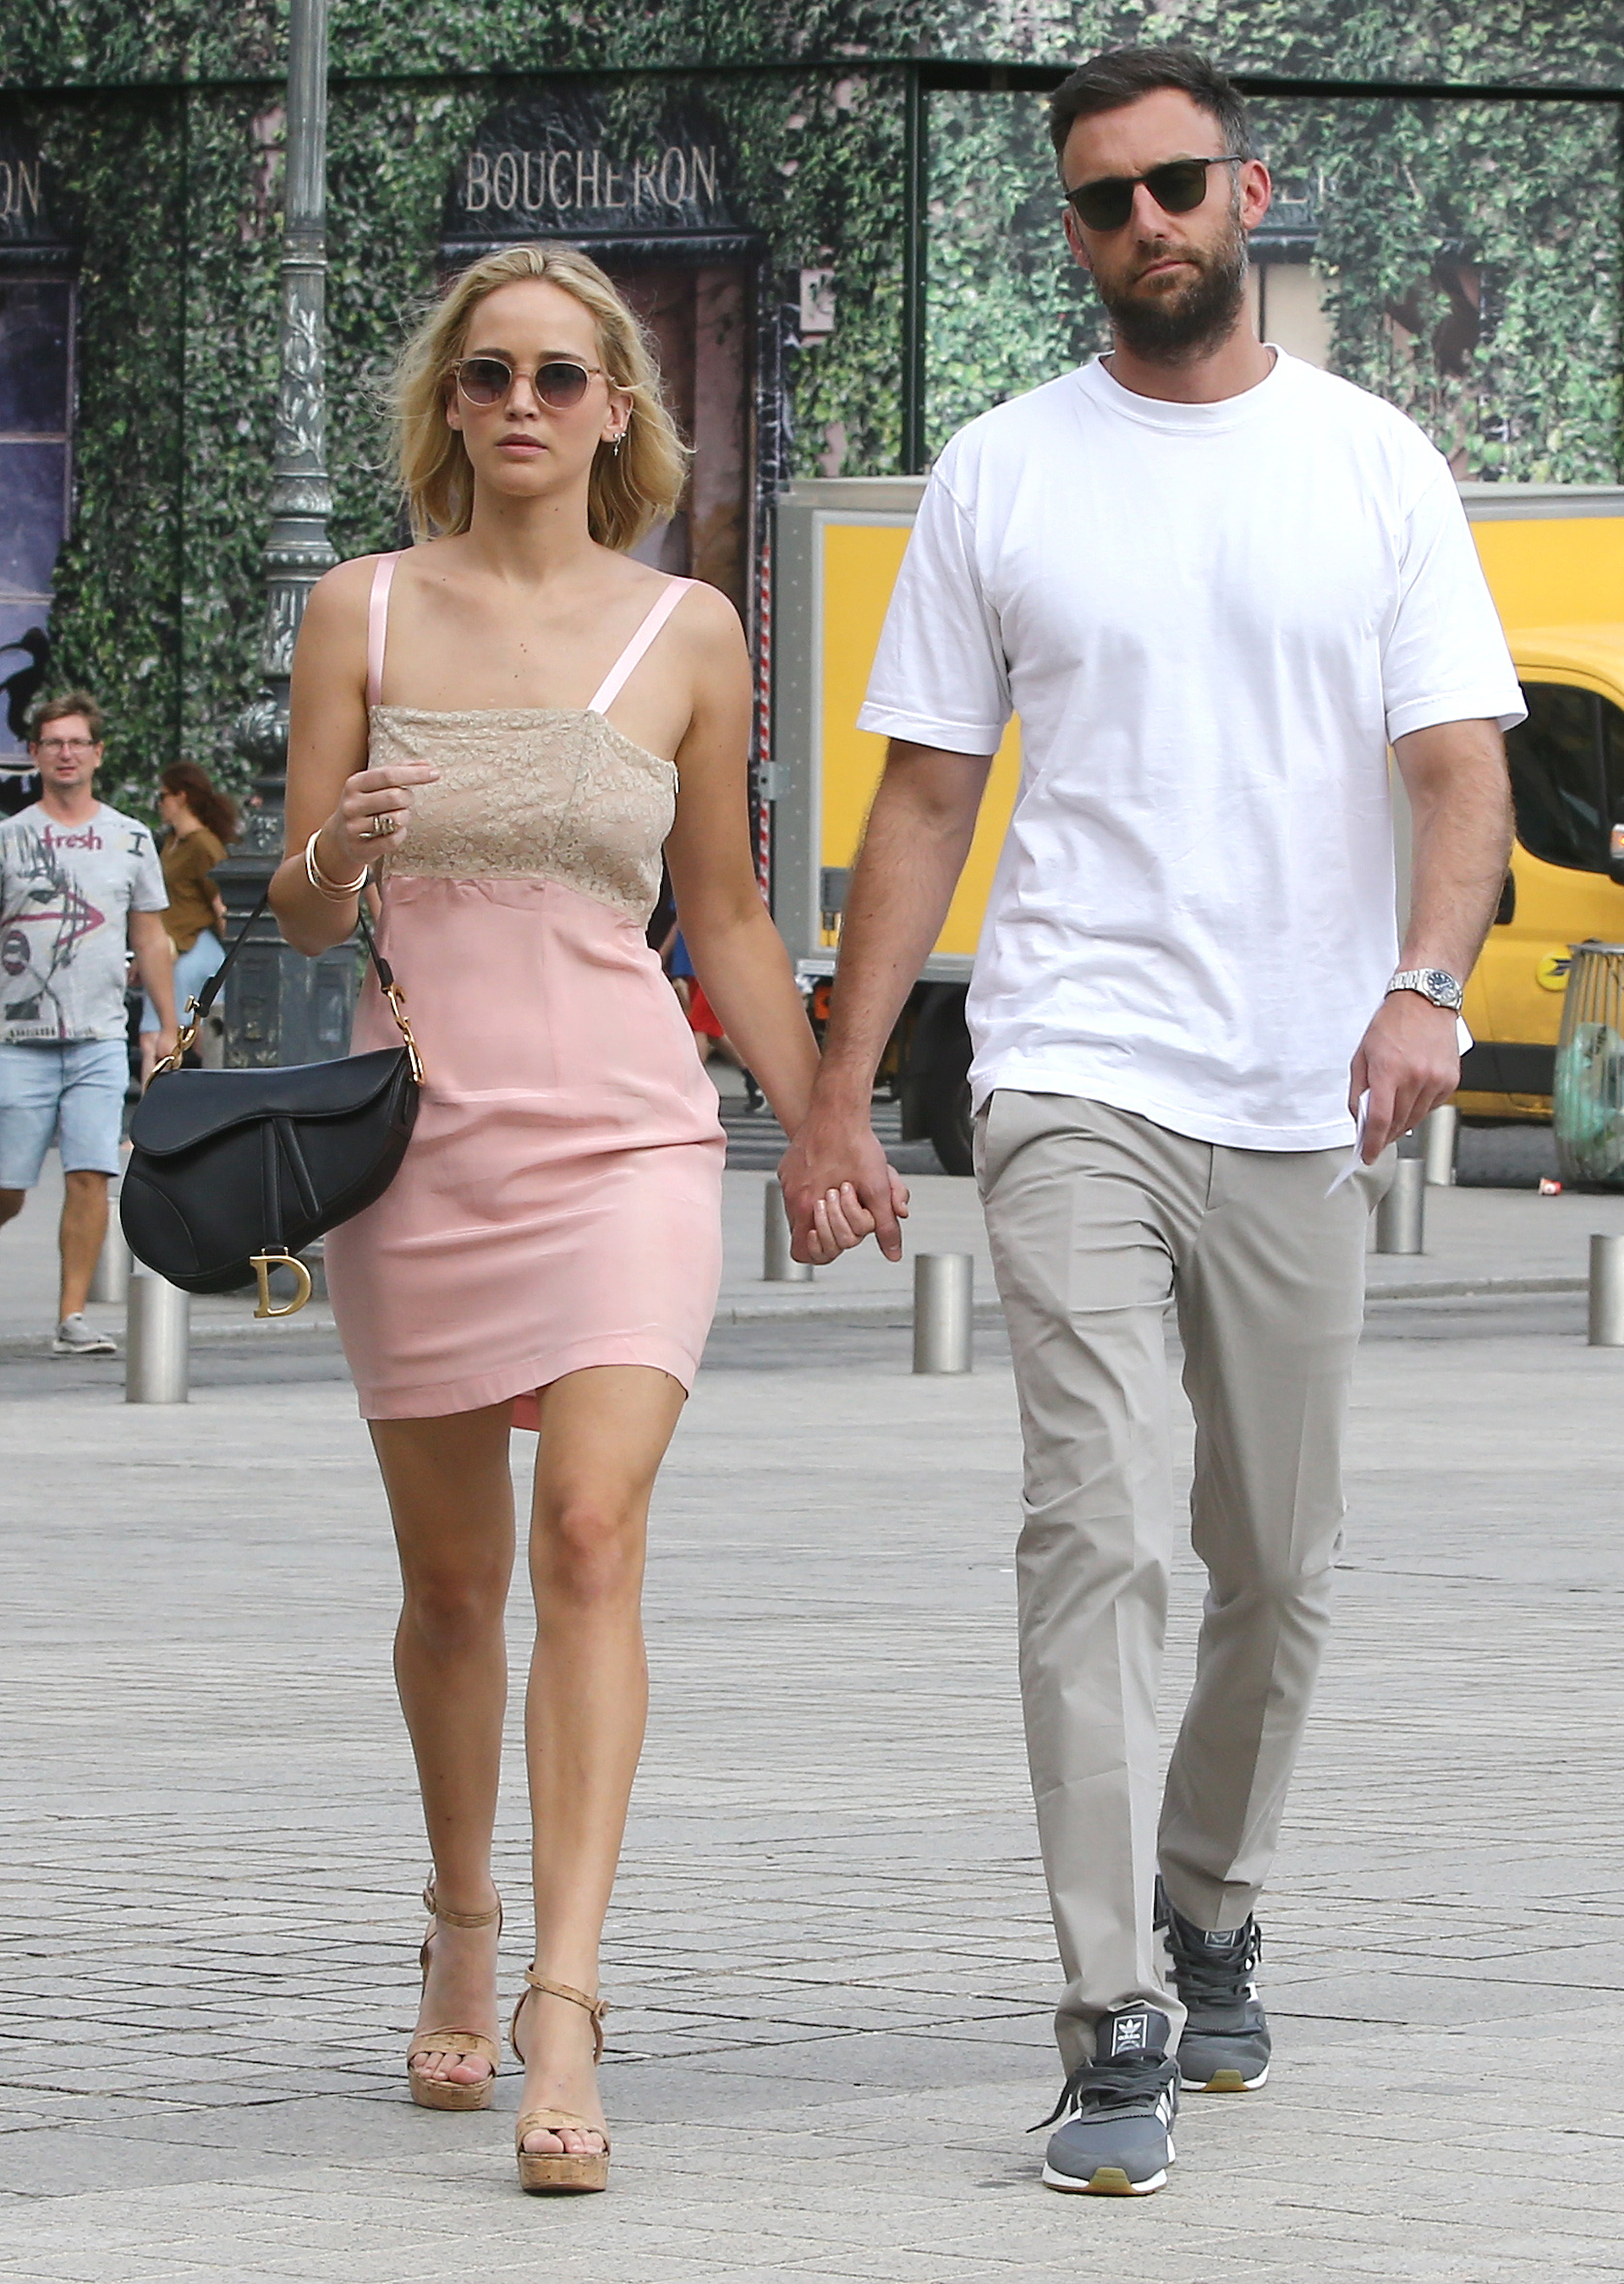 08/08/2018 Jennifer Lawrence is spotted on a romantic stroll with Cooke Maroney in Paris, France. The 27-year-old Oscar-winning actress and the art gallery director held hands while heading out together. Jennifer looked chic in a pale pink dress for her day out with her beau.   sales@theimagedirect.com Please byline:TheImageDirect.com